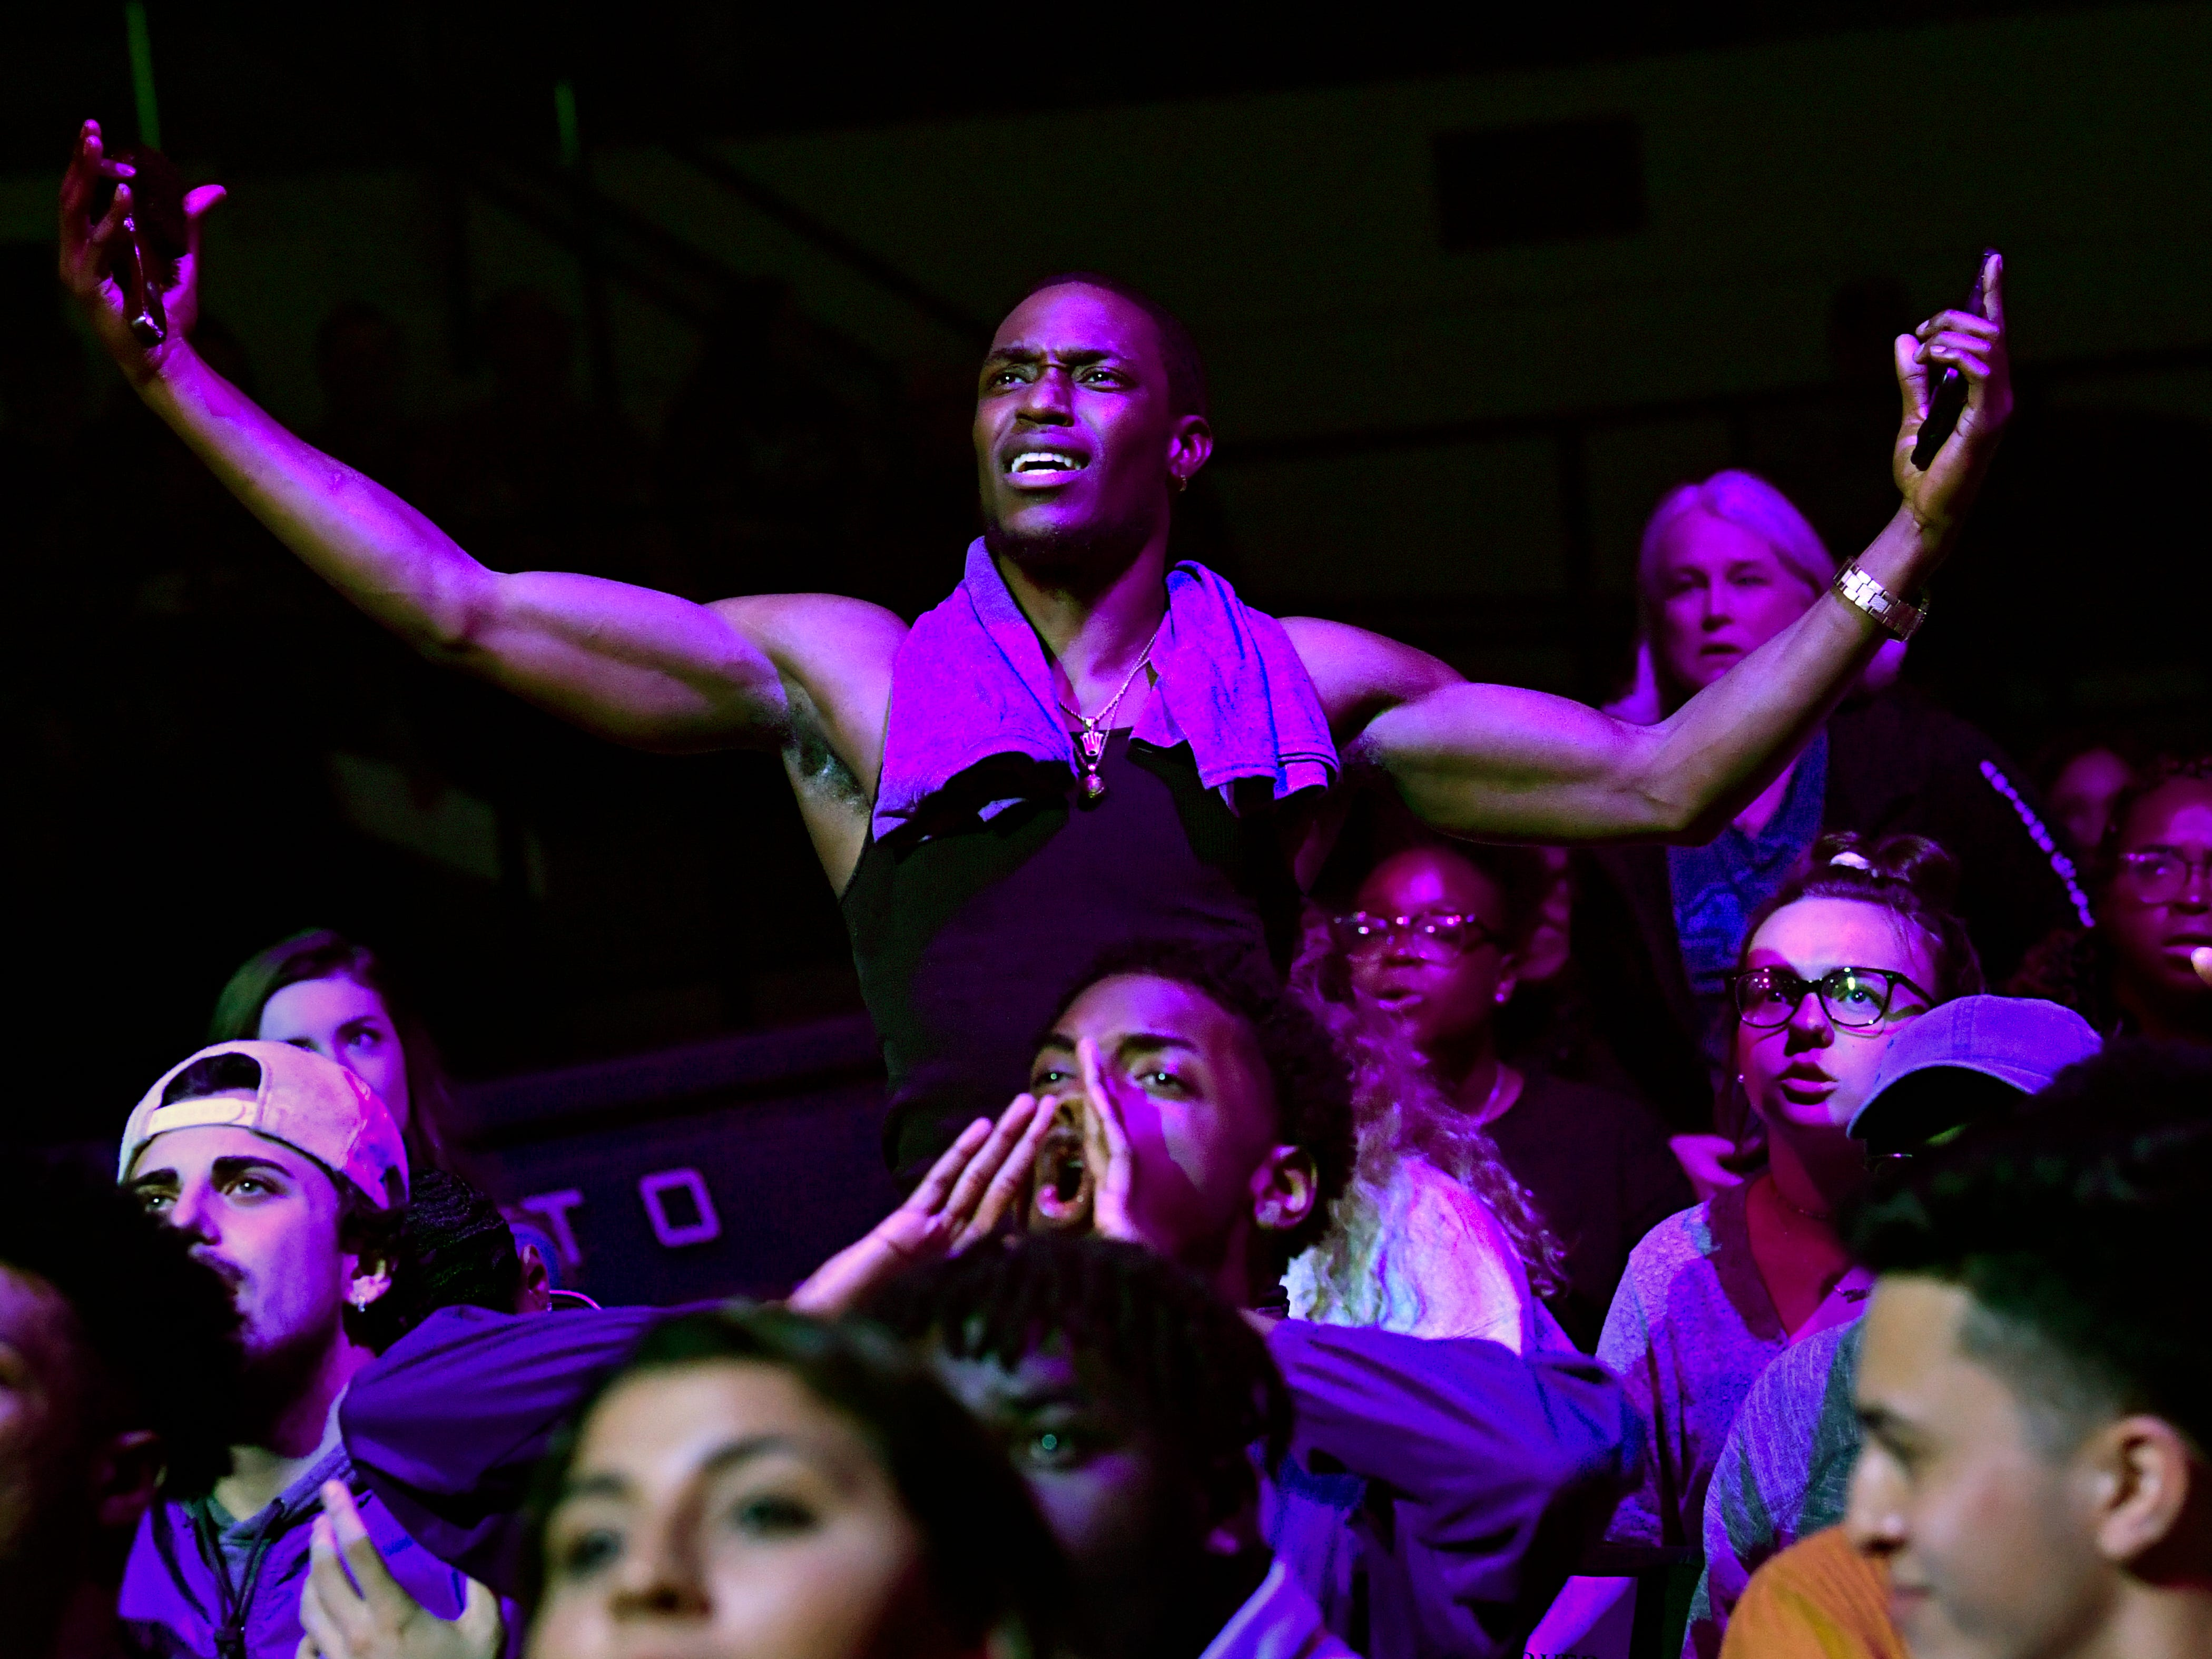 I. J. Bapeli raises his arms in frustration at at an official's call during a watch party in Moody Coliseum for the NCAA Tournament game in Florida between Abilene Christian University and the University of Kentucky Thursday March 21, 2019. Final score was 79-44, Kentucky.